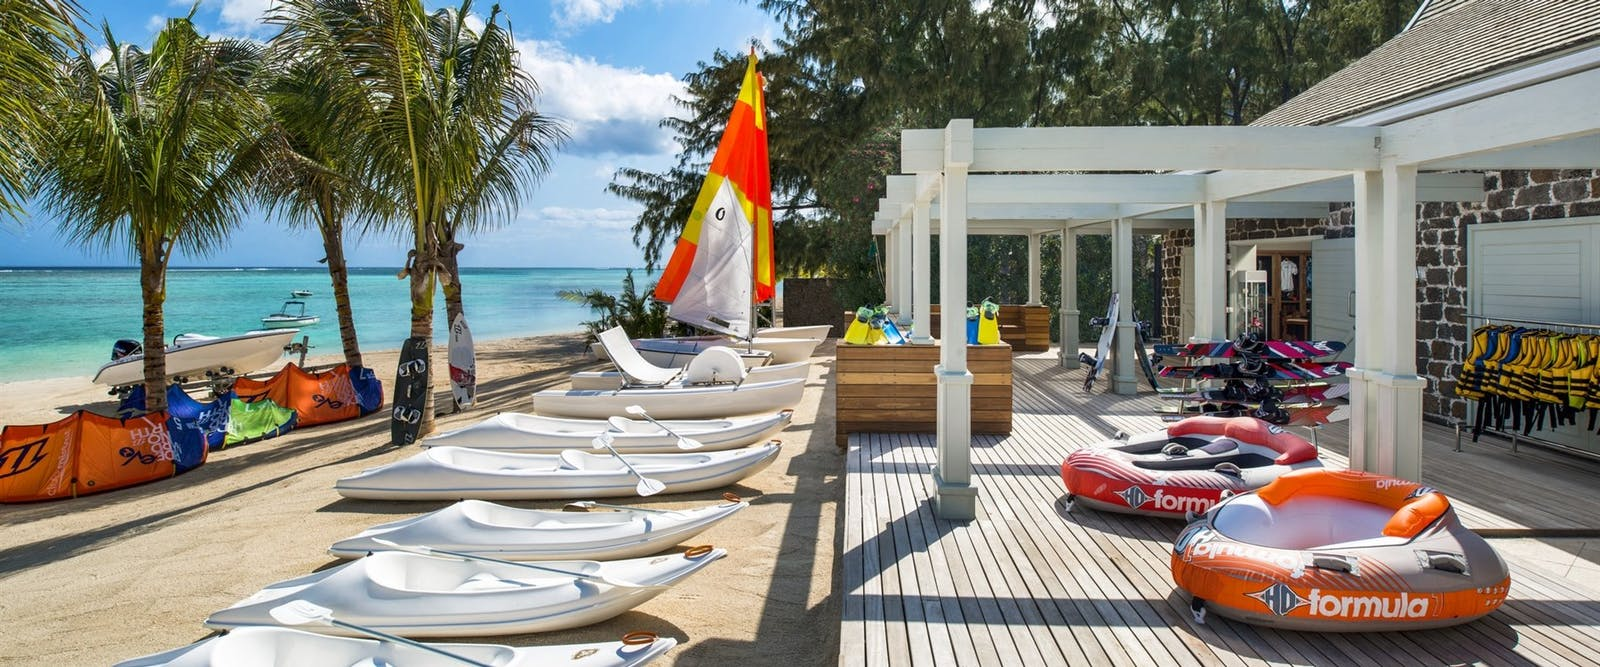 Watersport club at The St. Regis Mauritius Resort